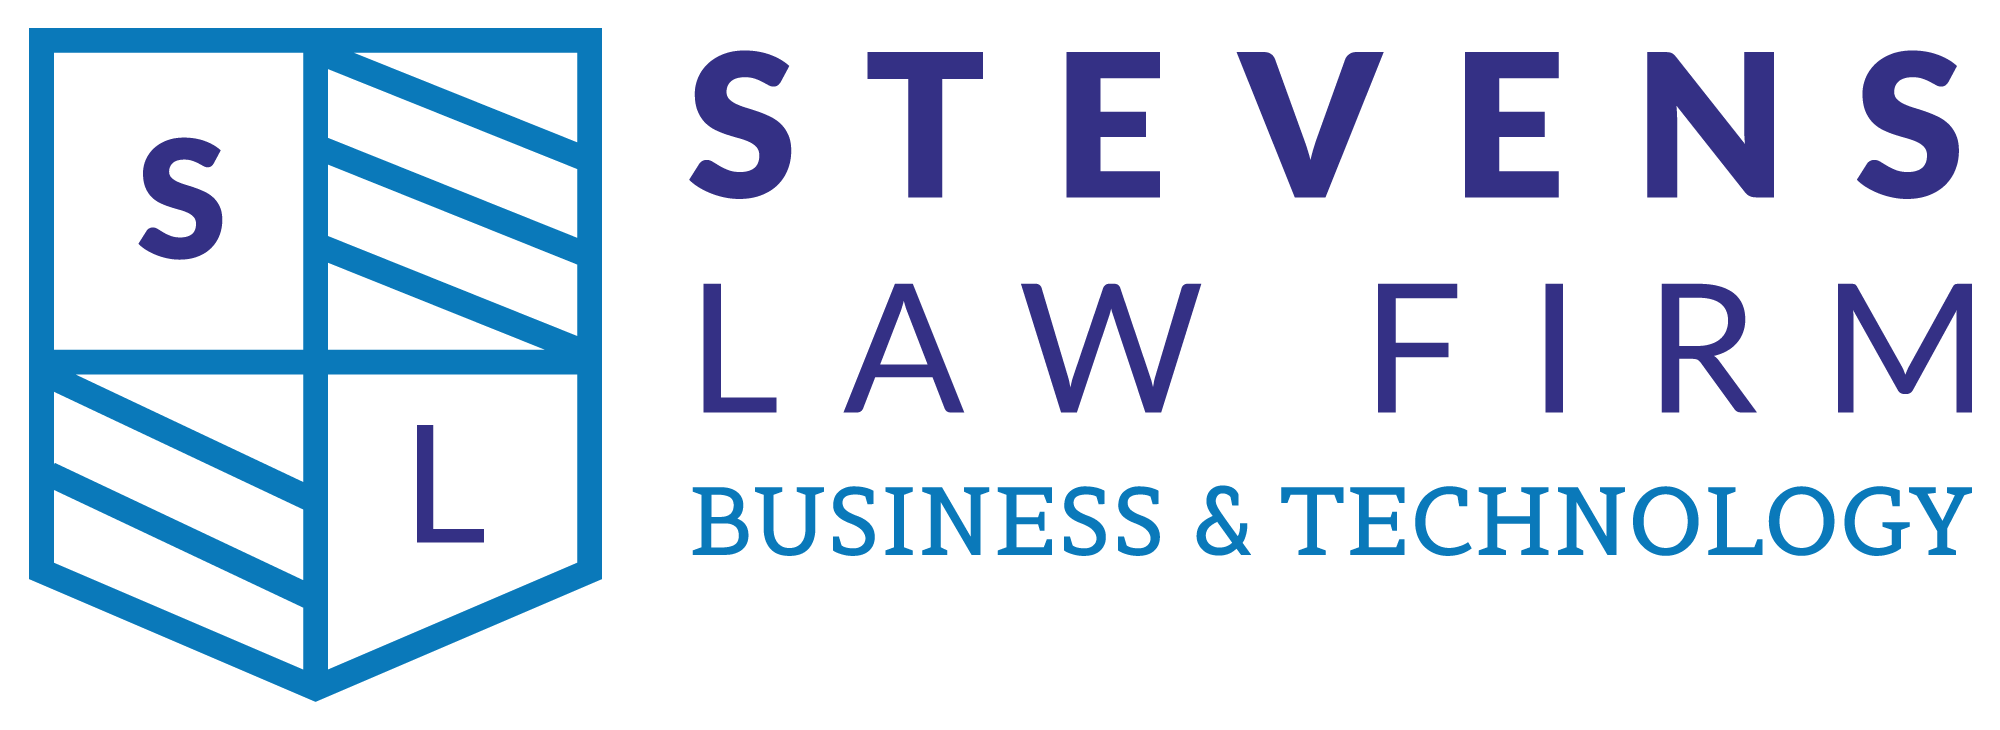 Stevens Law Firm - Business & Technology  Columbus, Ohio